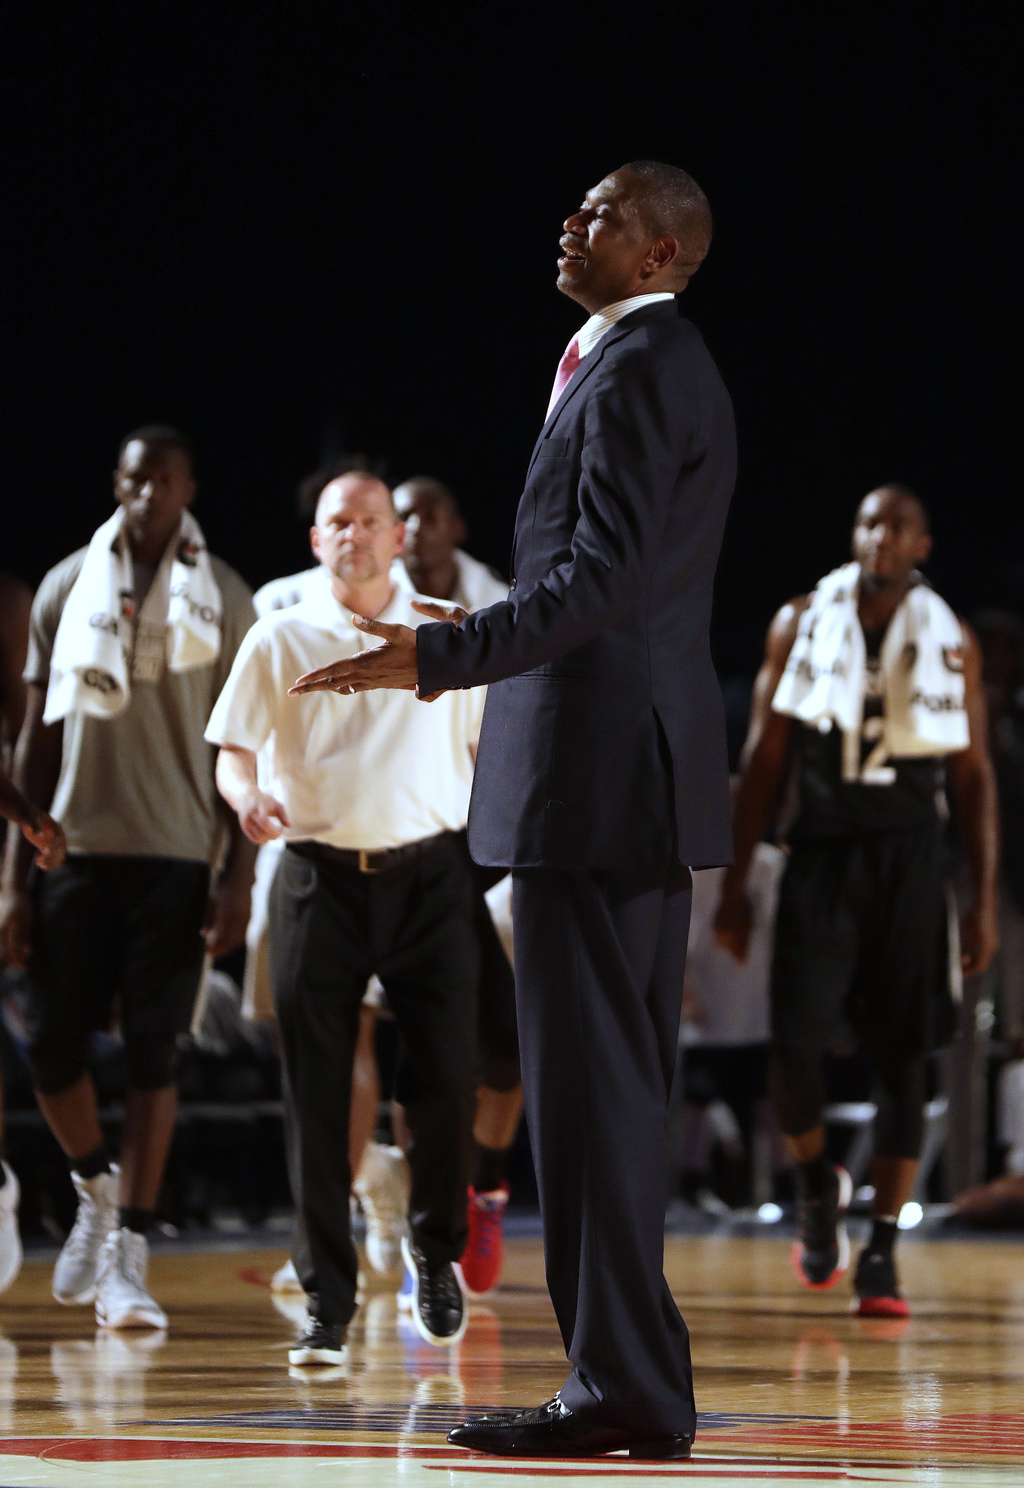 NBA Ambassador Dikembe Mutombo, during the NBA Africa Game between Team Africa and Team World, at the Dome in Johannesburg, South Africa, Saturday, Au...